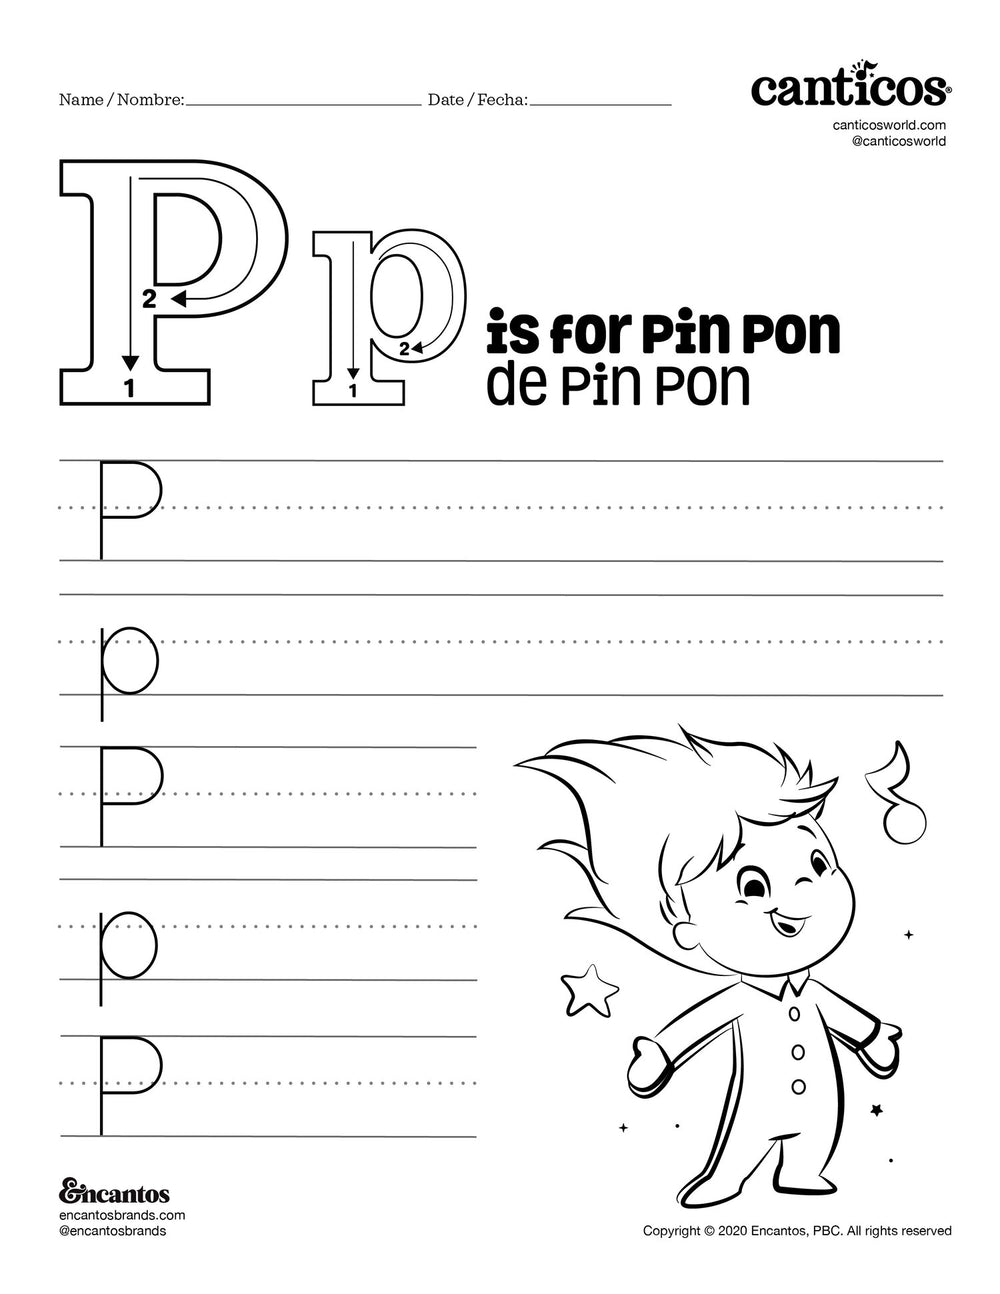 Letter P for Pin Pon - Free Activity Sheet